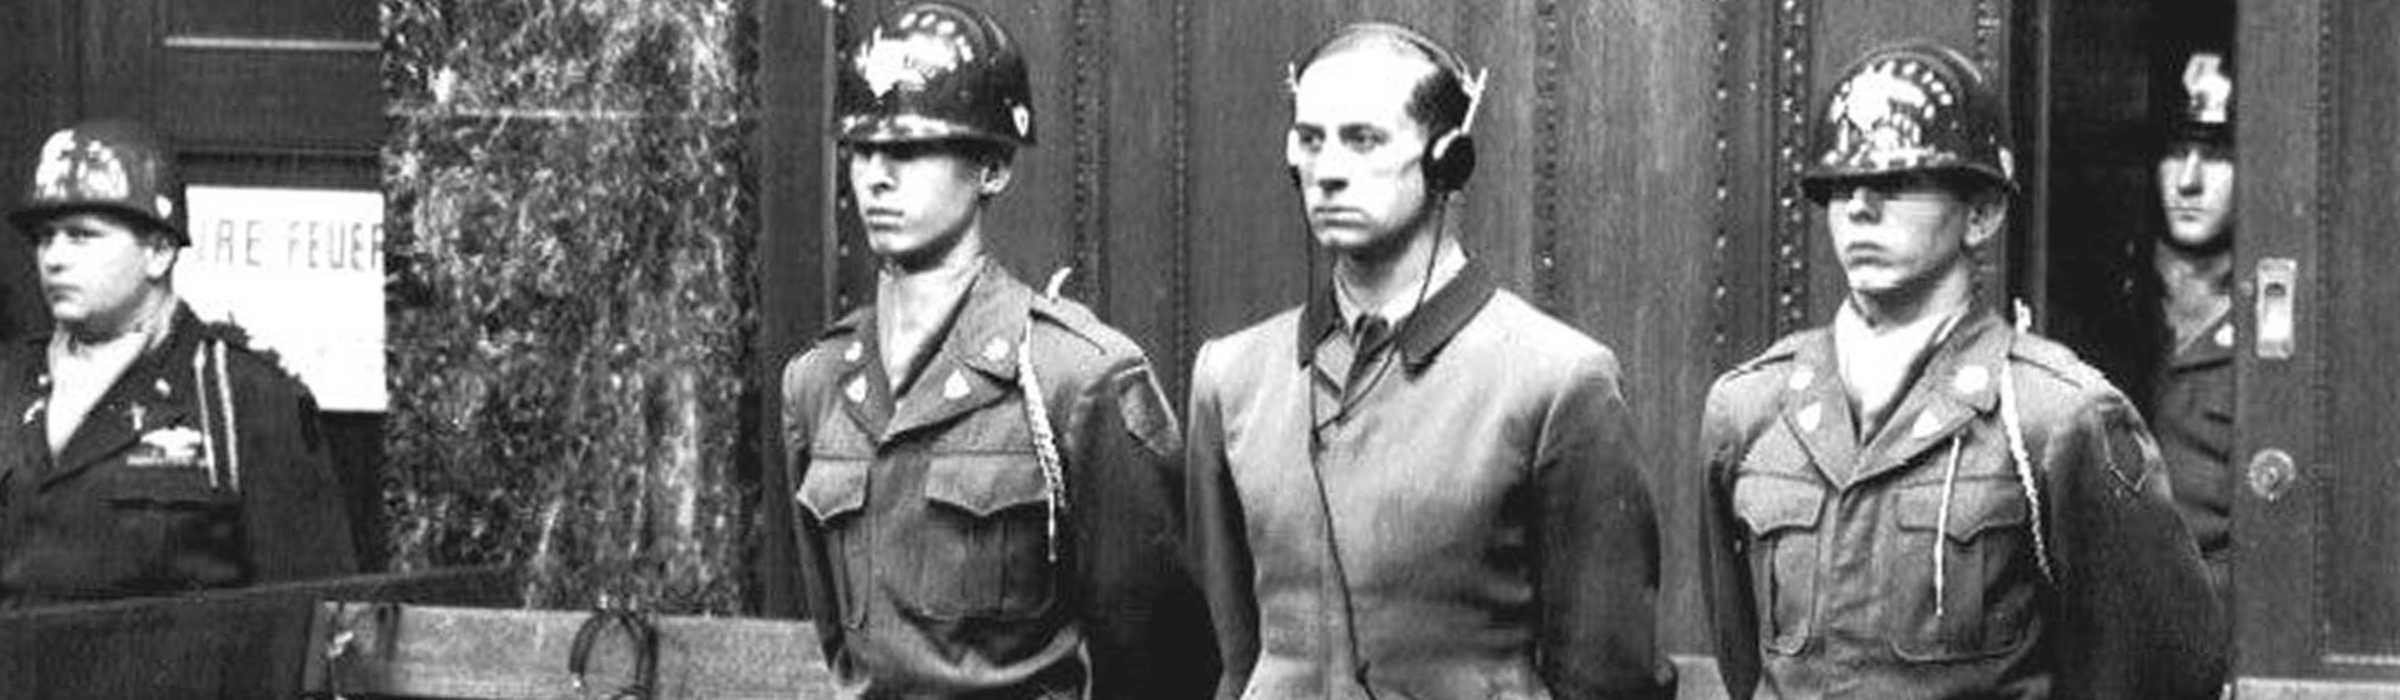 Nuremberg trial of Dr. Karl Brandt, Hitler's doctor and director of Nazi experiments on humans.